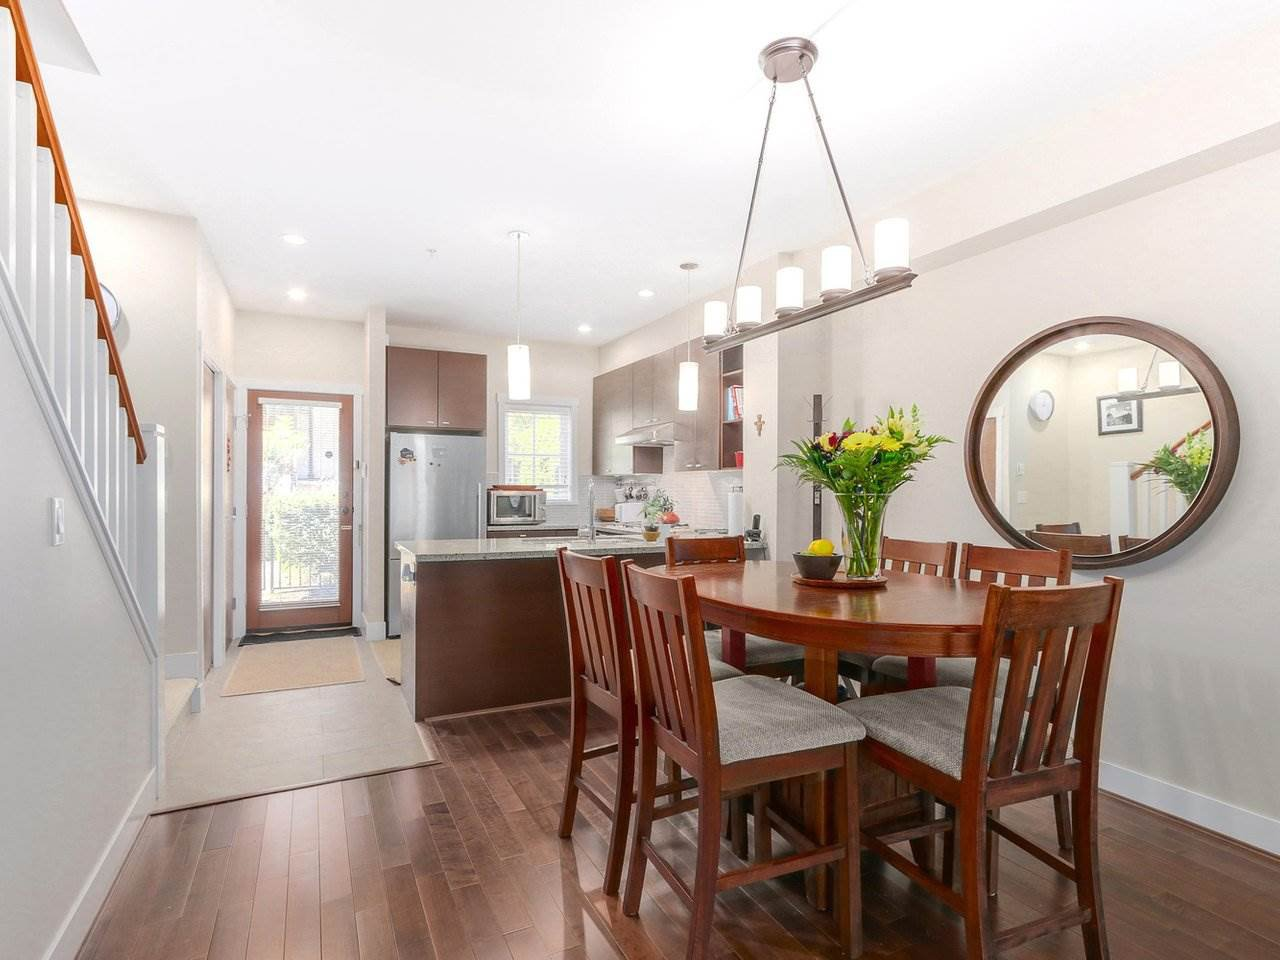 """Photo 5: Photos: 6181 OAK Street in Vancouver: South Granville Townhouse for sale in """"CARRINGTON"""" (Vancouver West)  : MLS®# R2295526"""